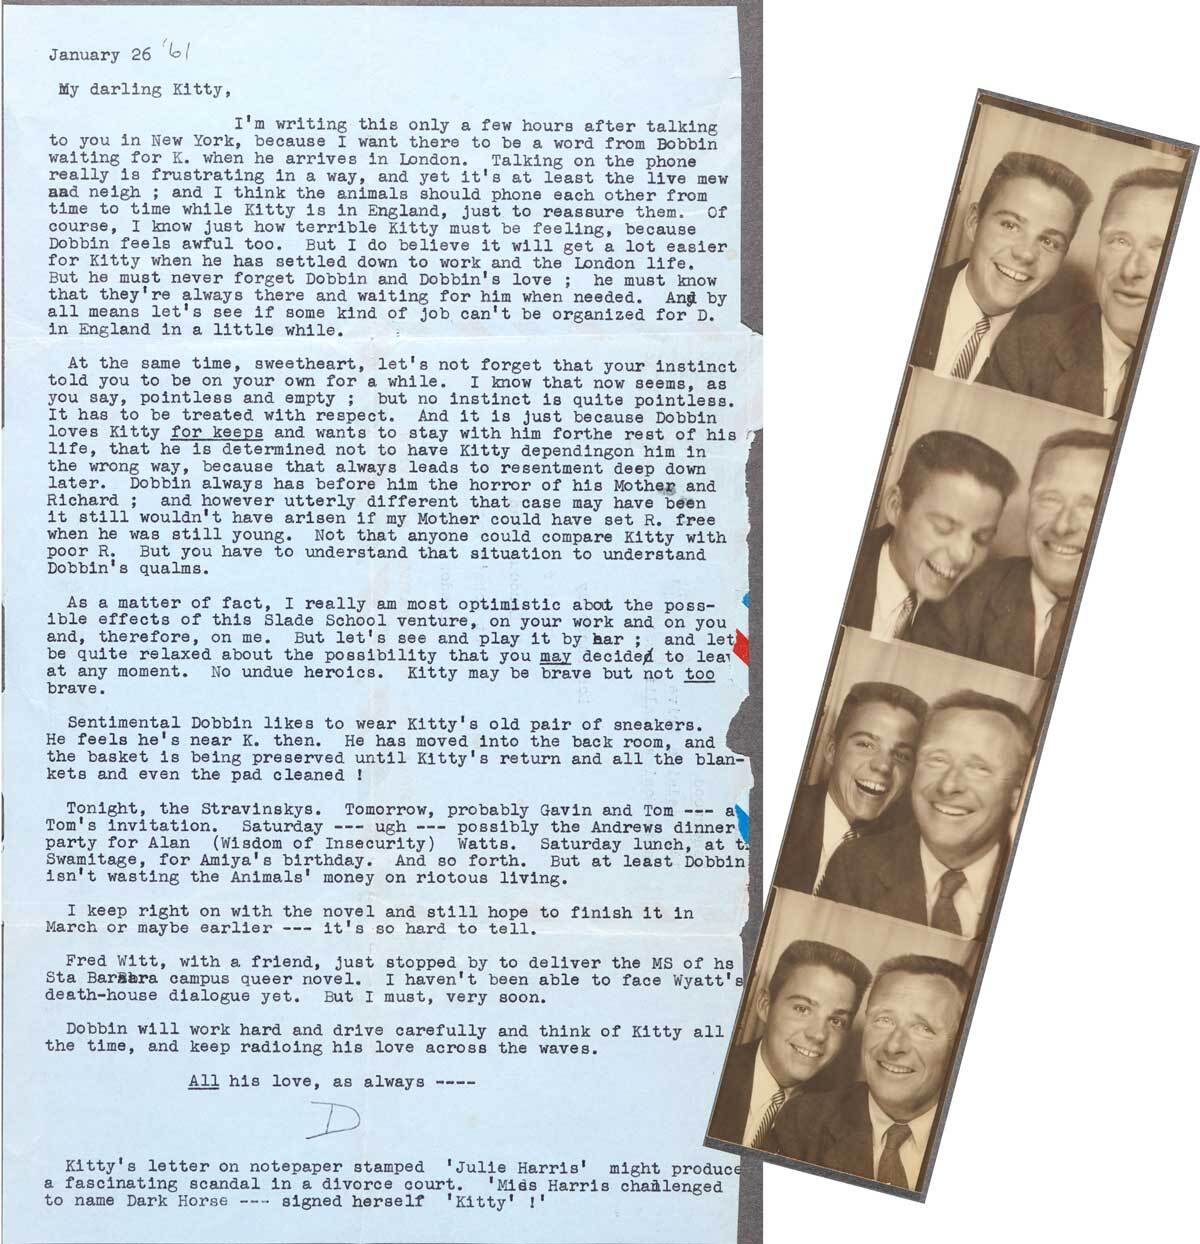 Christopher Isherwood's letter to Don Bachardy dated January 26, 1961 and photo booth photos of Don Bachardy and Christopher Isherwood dated March 30, 1953   The Huntington Library, Art Museum, and Botanical Gardens